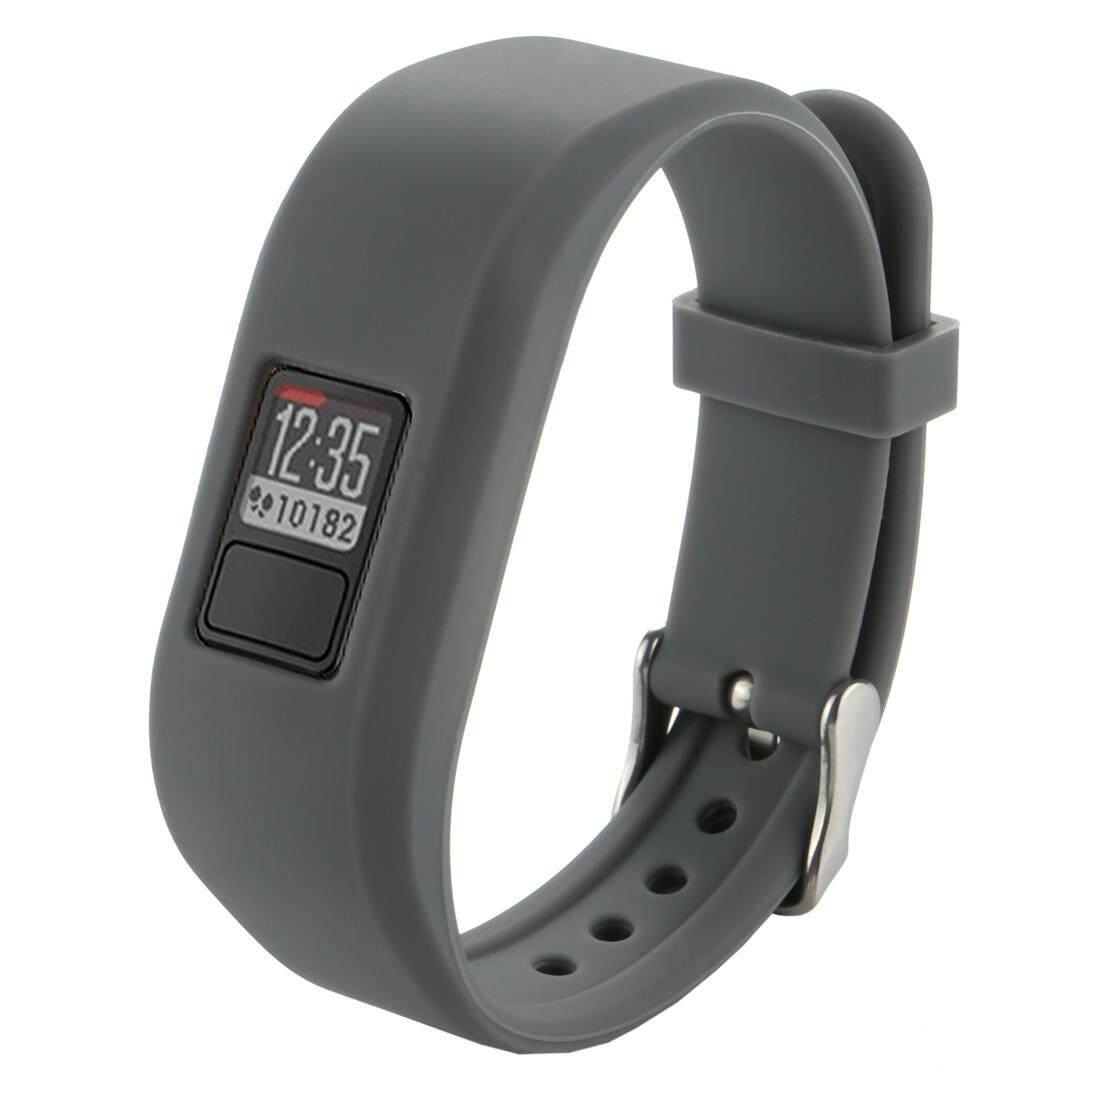 For Garmin Vivofit 3 Smart Watch Silicone Watchband, Length: about 24.2cm(Grey) - intl